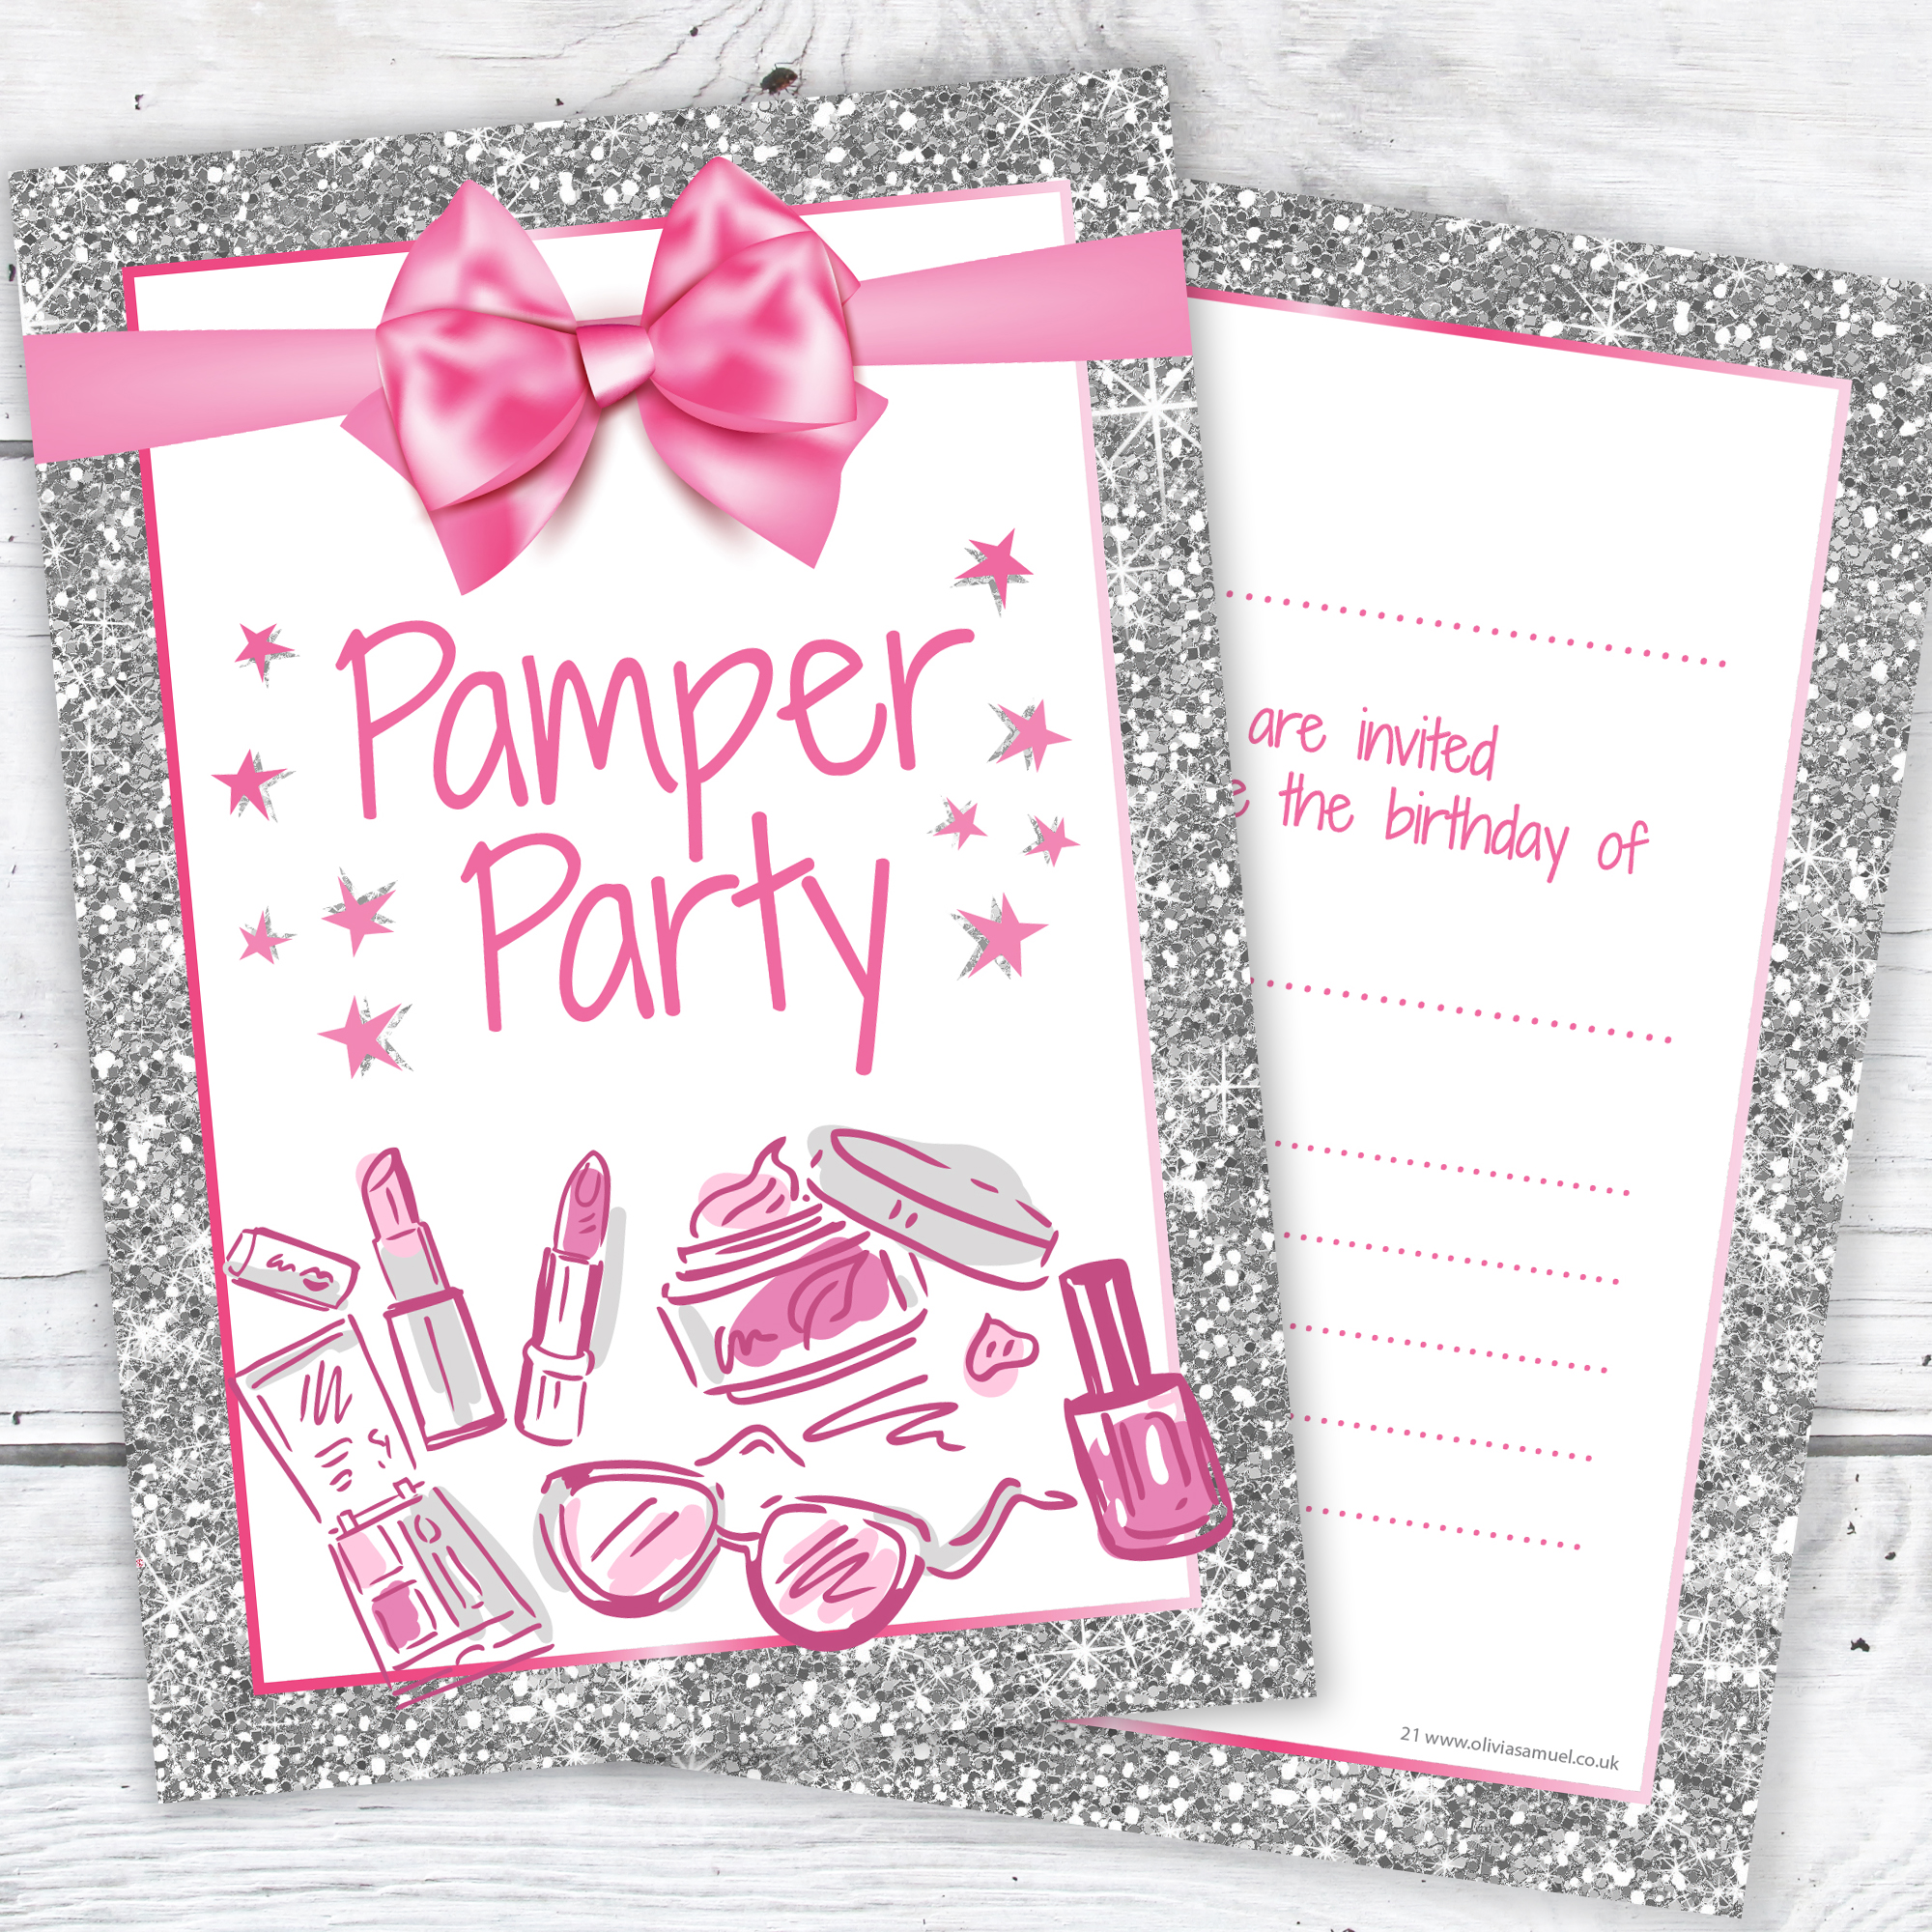 Pamper Party Invitations Girl Teen Birthday Invites Pink And Photo Effect Silver Glitter